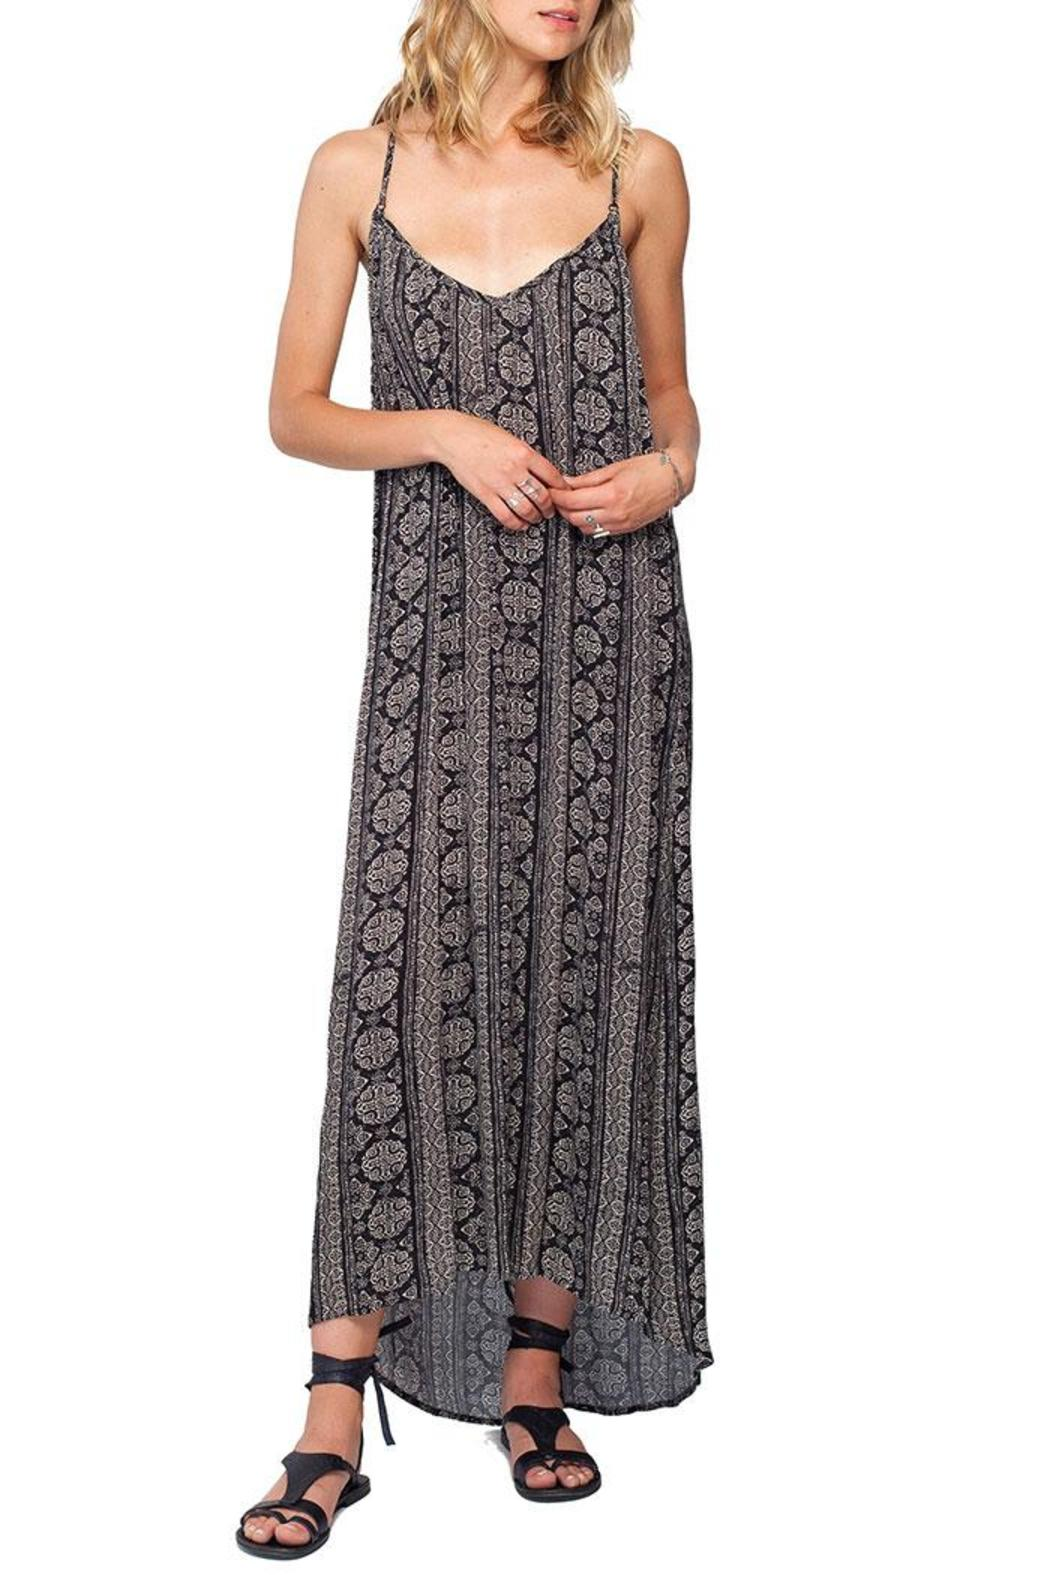 Gentle Fawn Mica Maxi Dress - Main Image